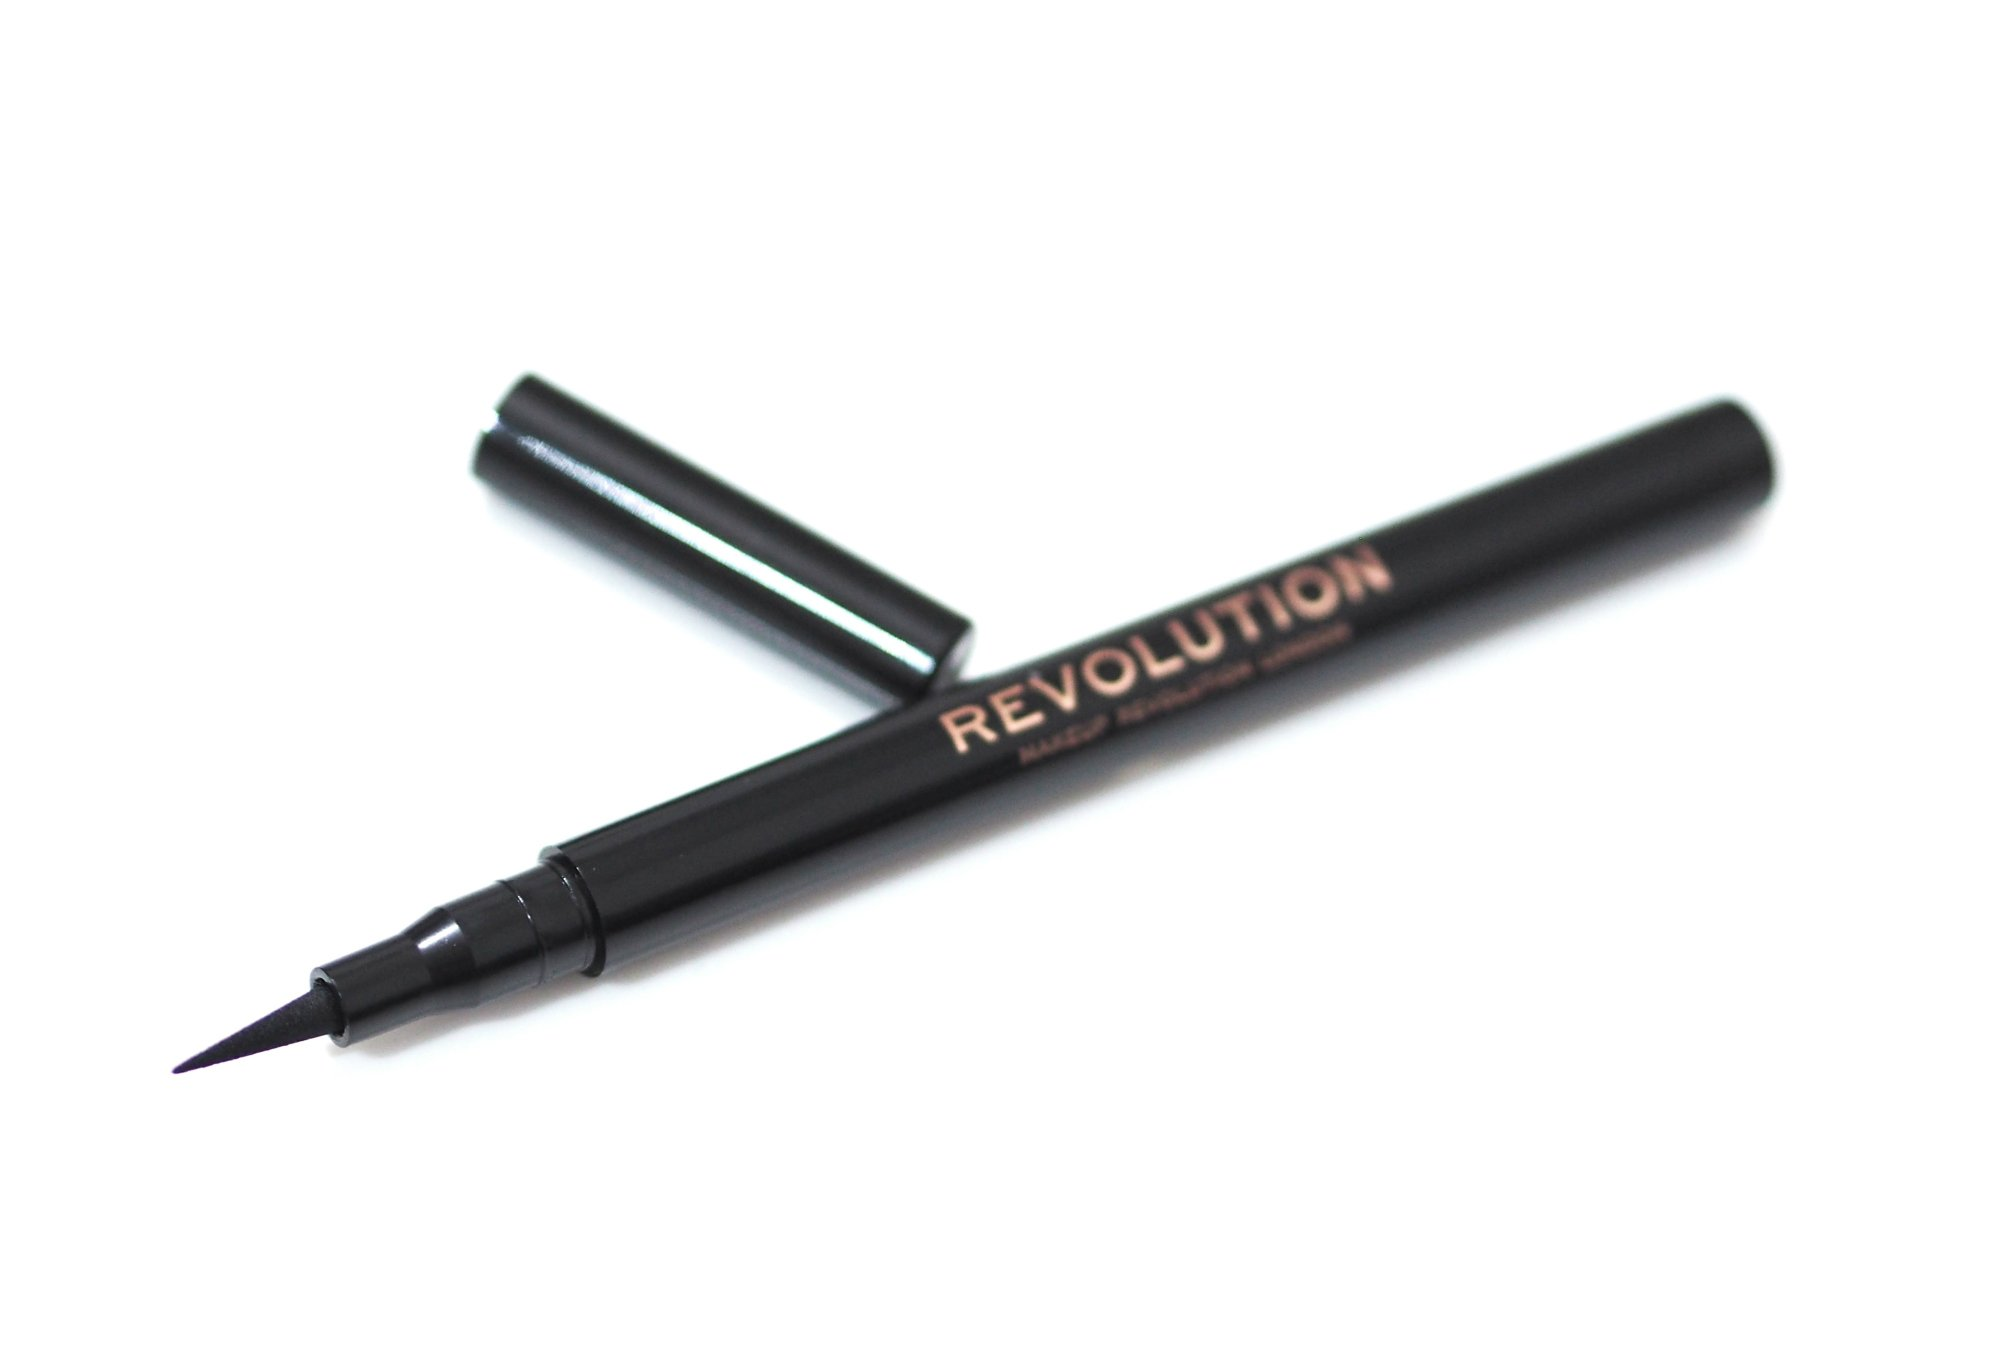 Revolution The Liner Revolution Felt Tip Liner Review and Swatches